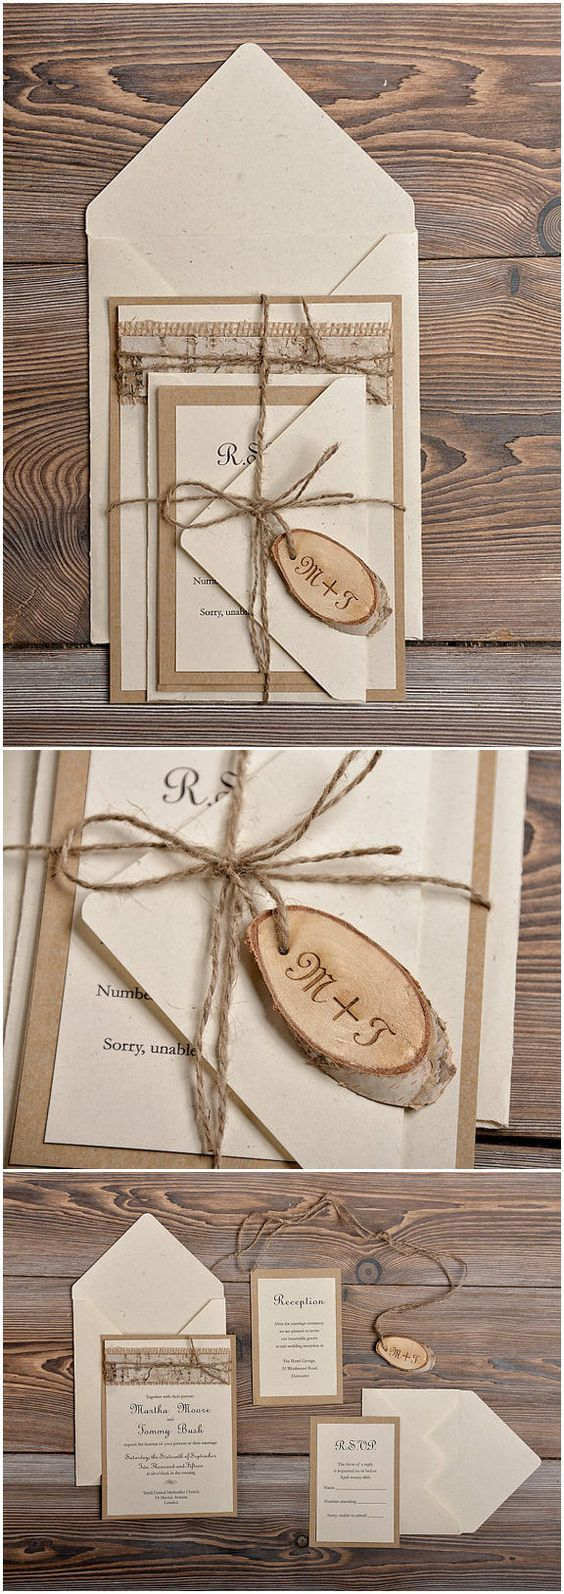 Top 10 Rustic Wedding Invitations to WOW Your Guests | Birch bark ...